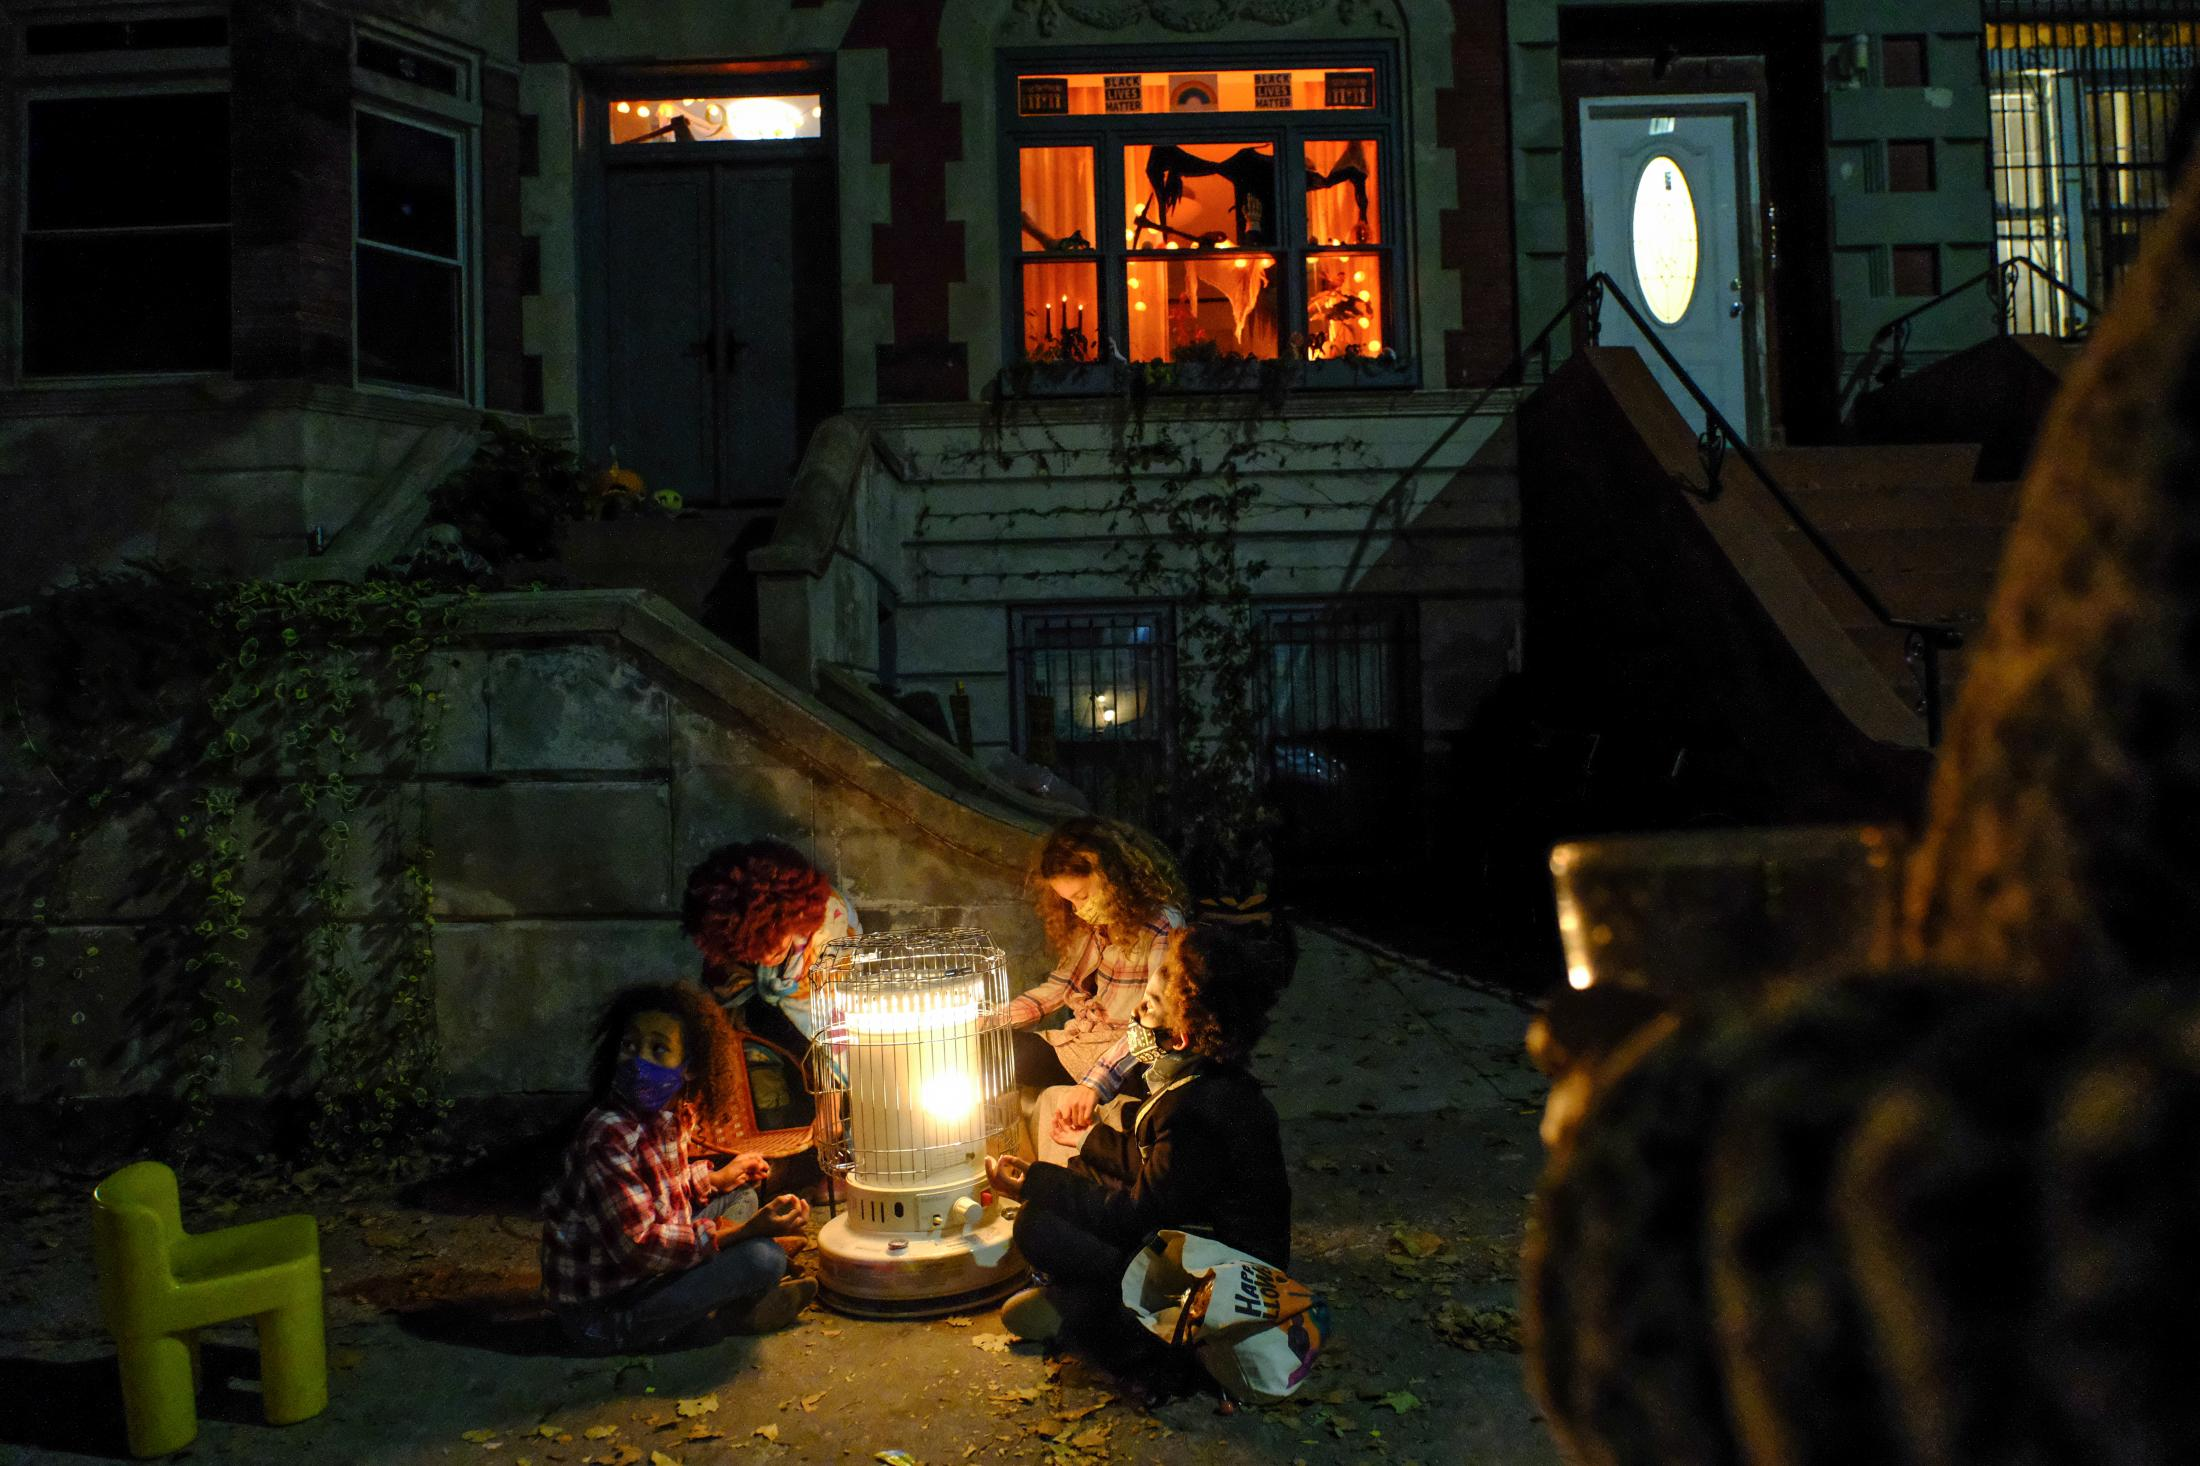 October 31, 2020: After a long evening of trick or treating on our block, the kids warm themselves at Sam and Micaela's outdoor heater. The adults look on and sip wine.